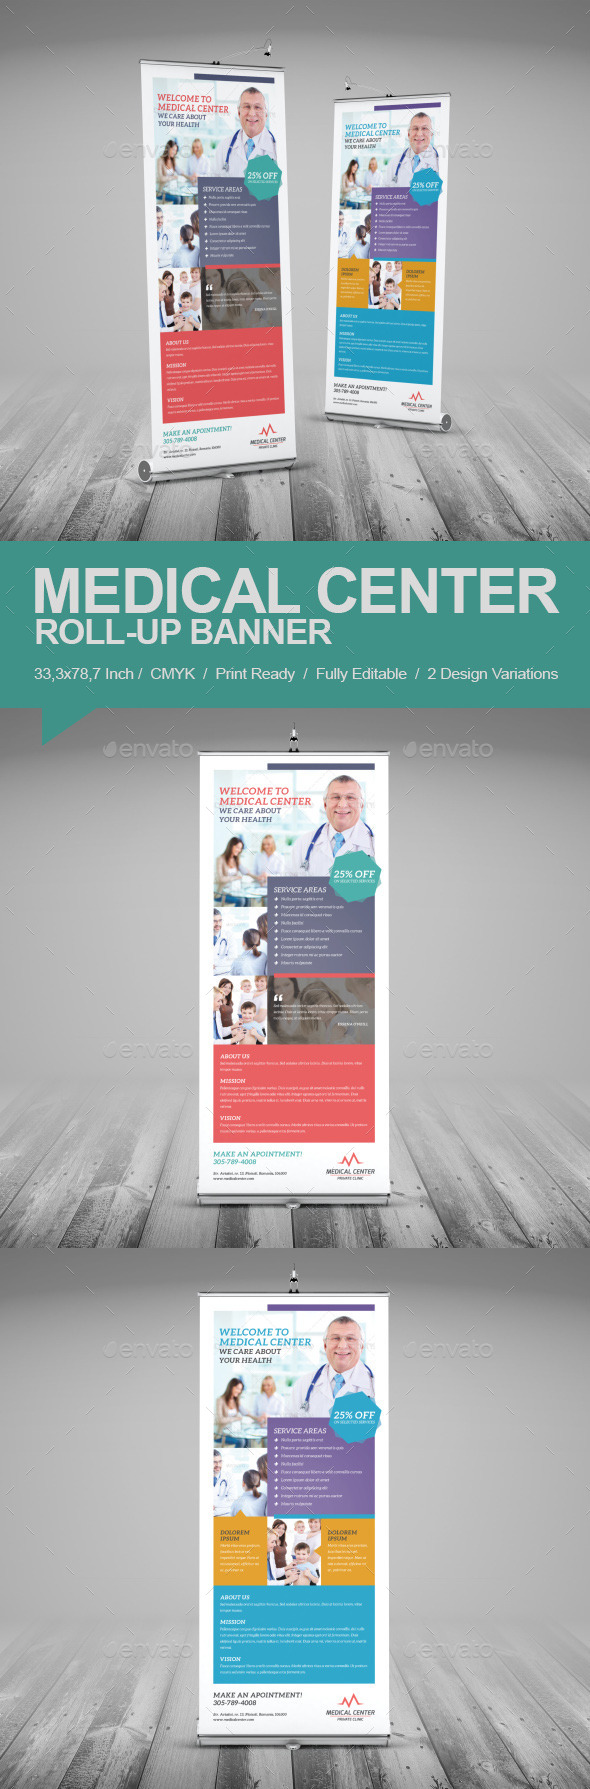 GraphicRiver Medical Center Roll-Up Banner 9724651